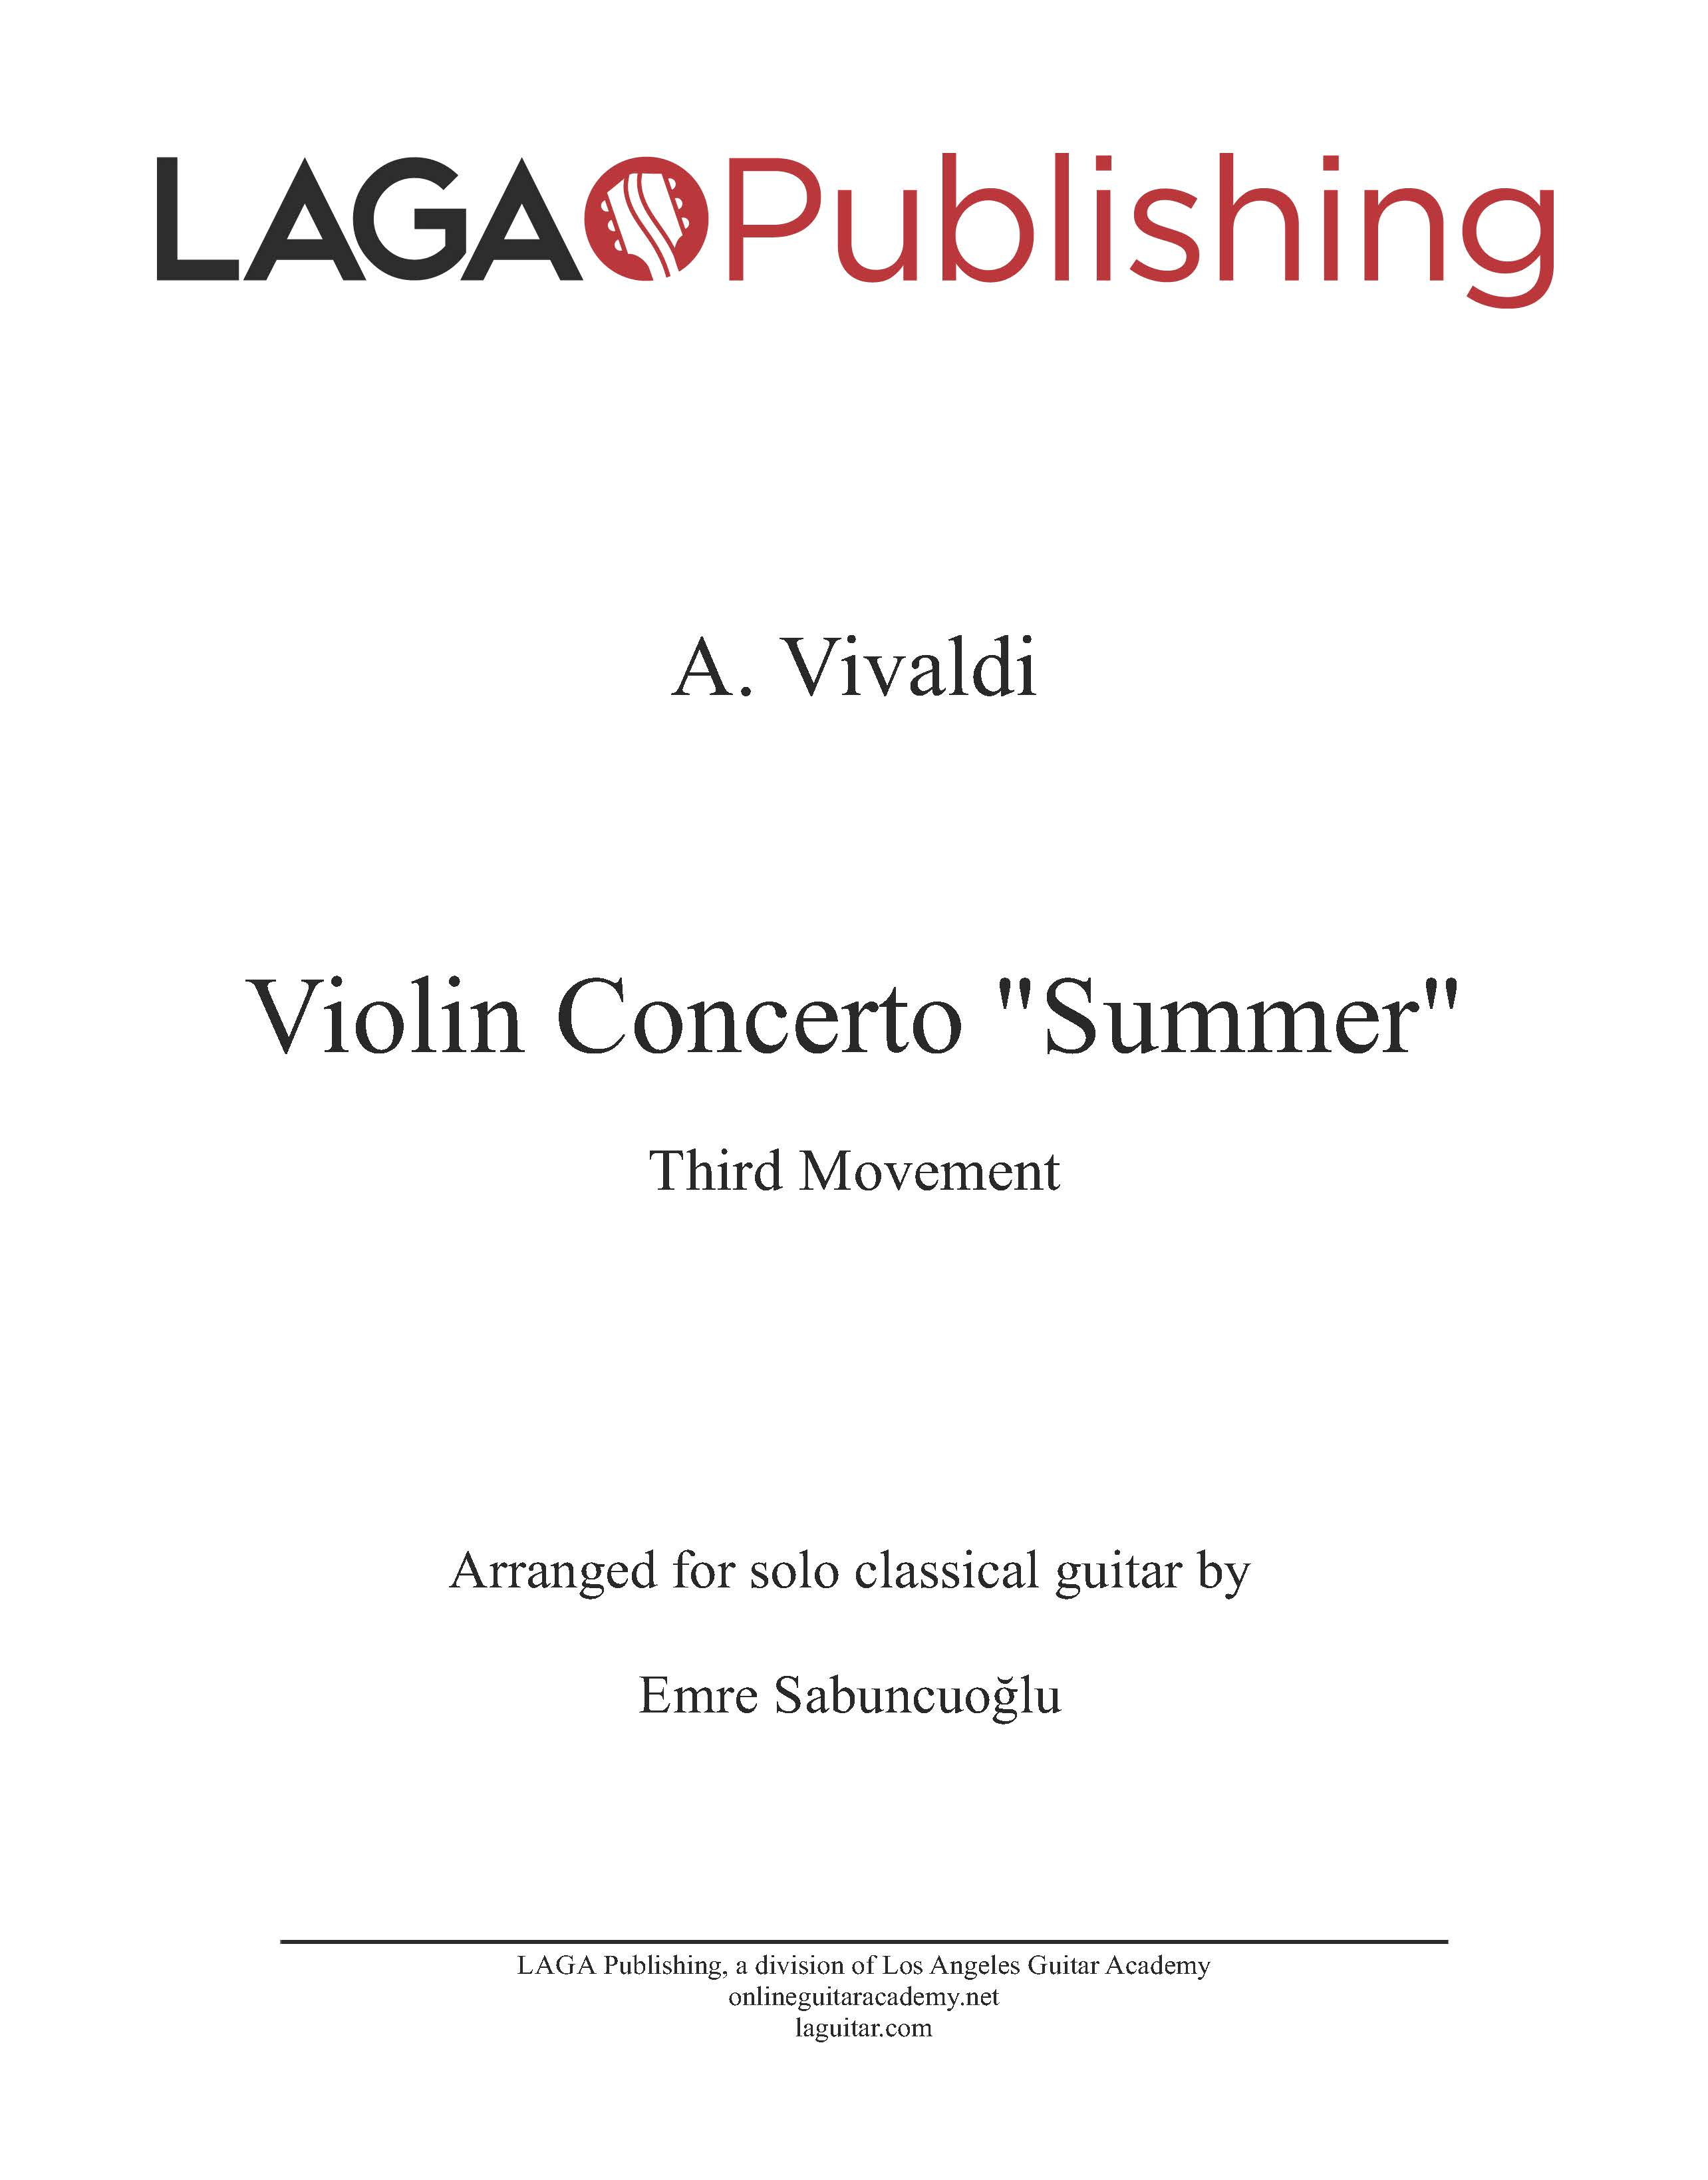 The Four Seasons, Summer, Third mvt, by A. Vivaldi for classical guitar